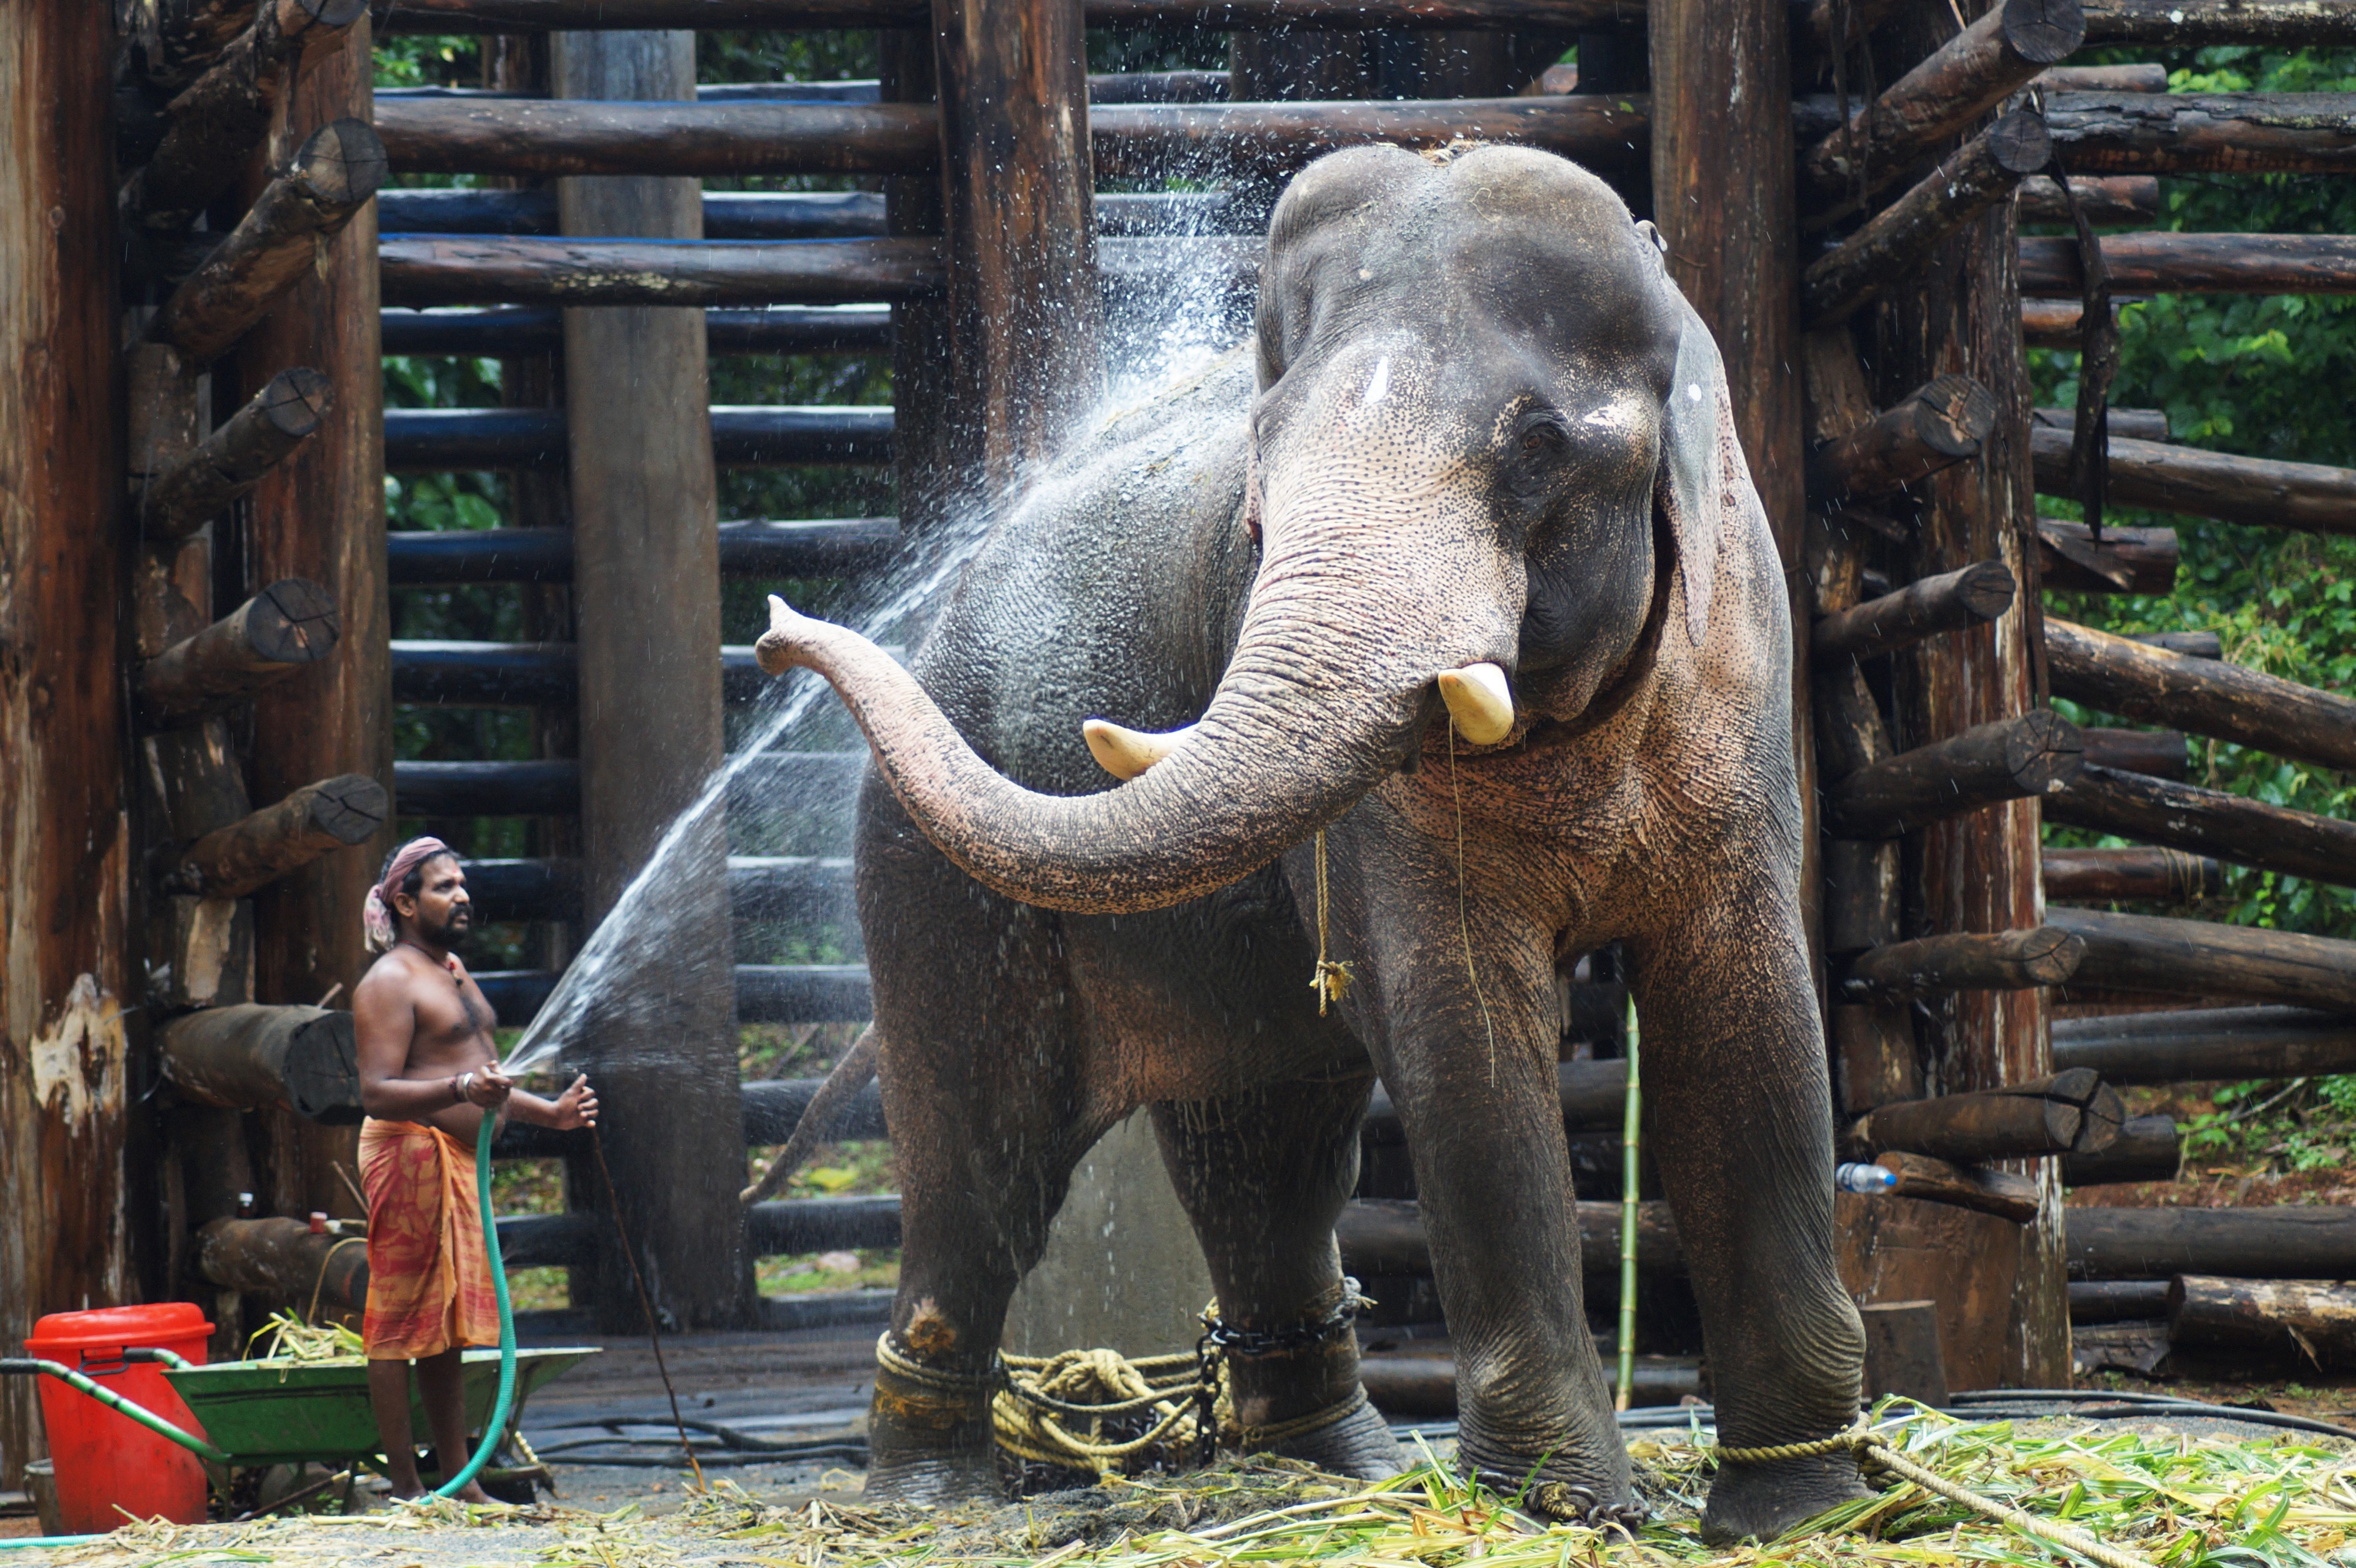 Chained Elephant in Kodanad, India